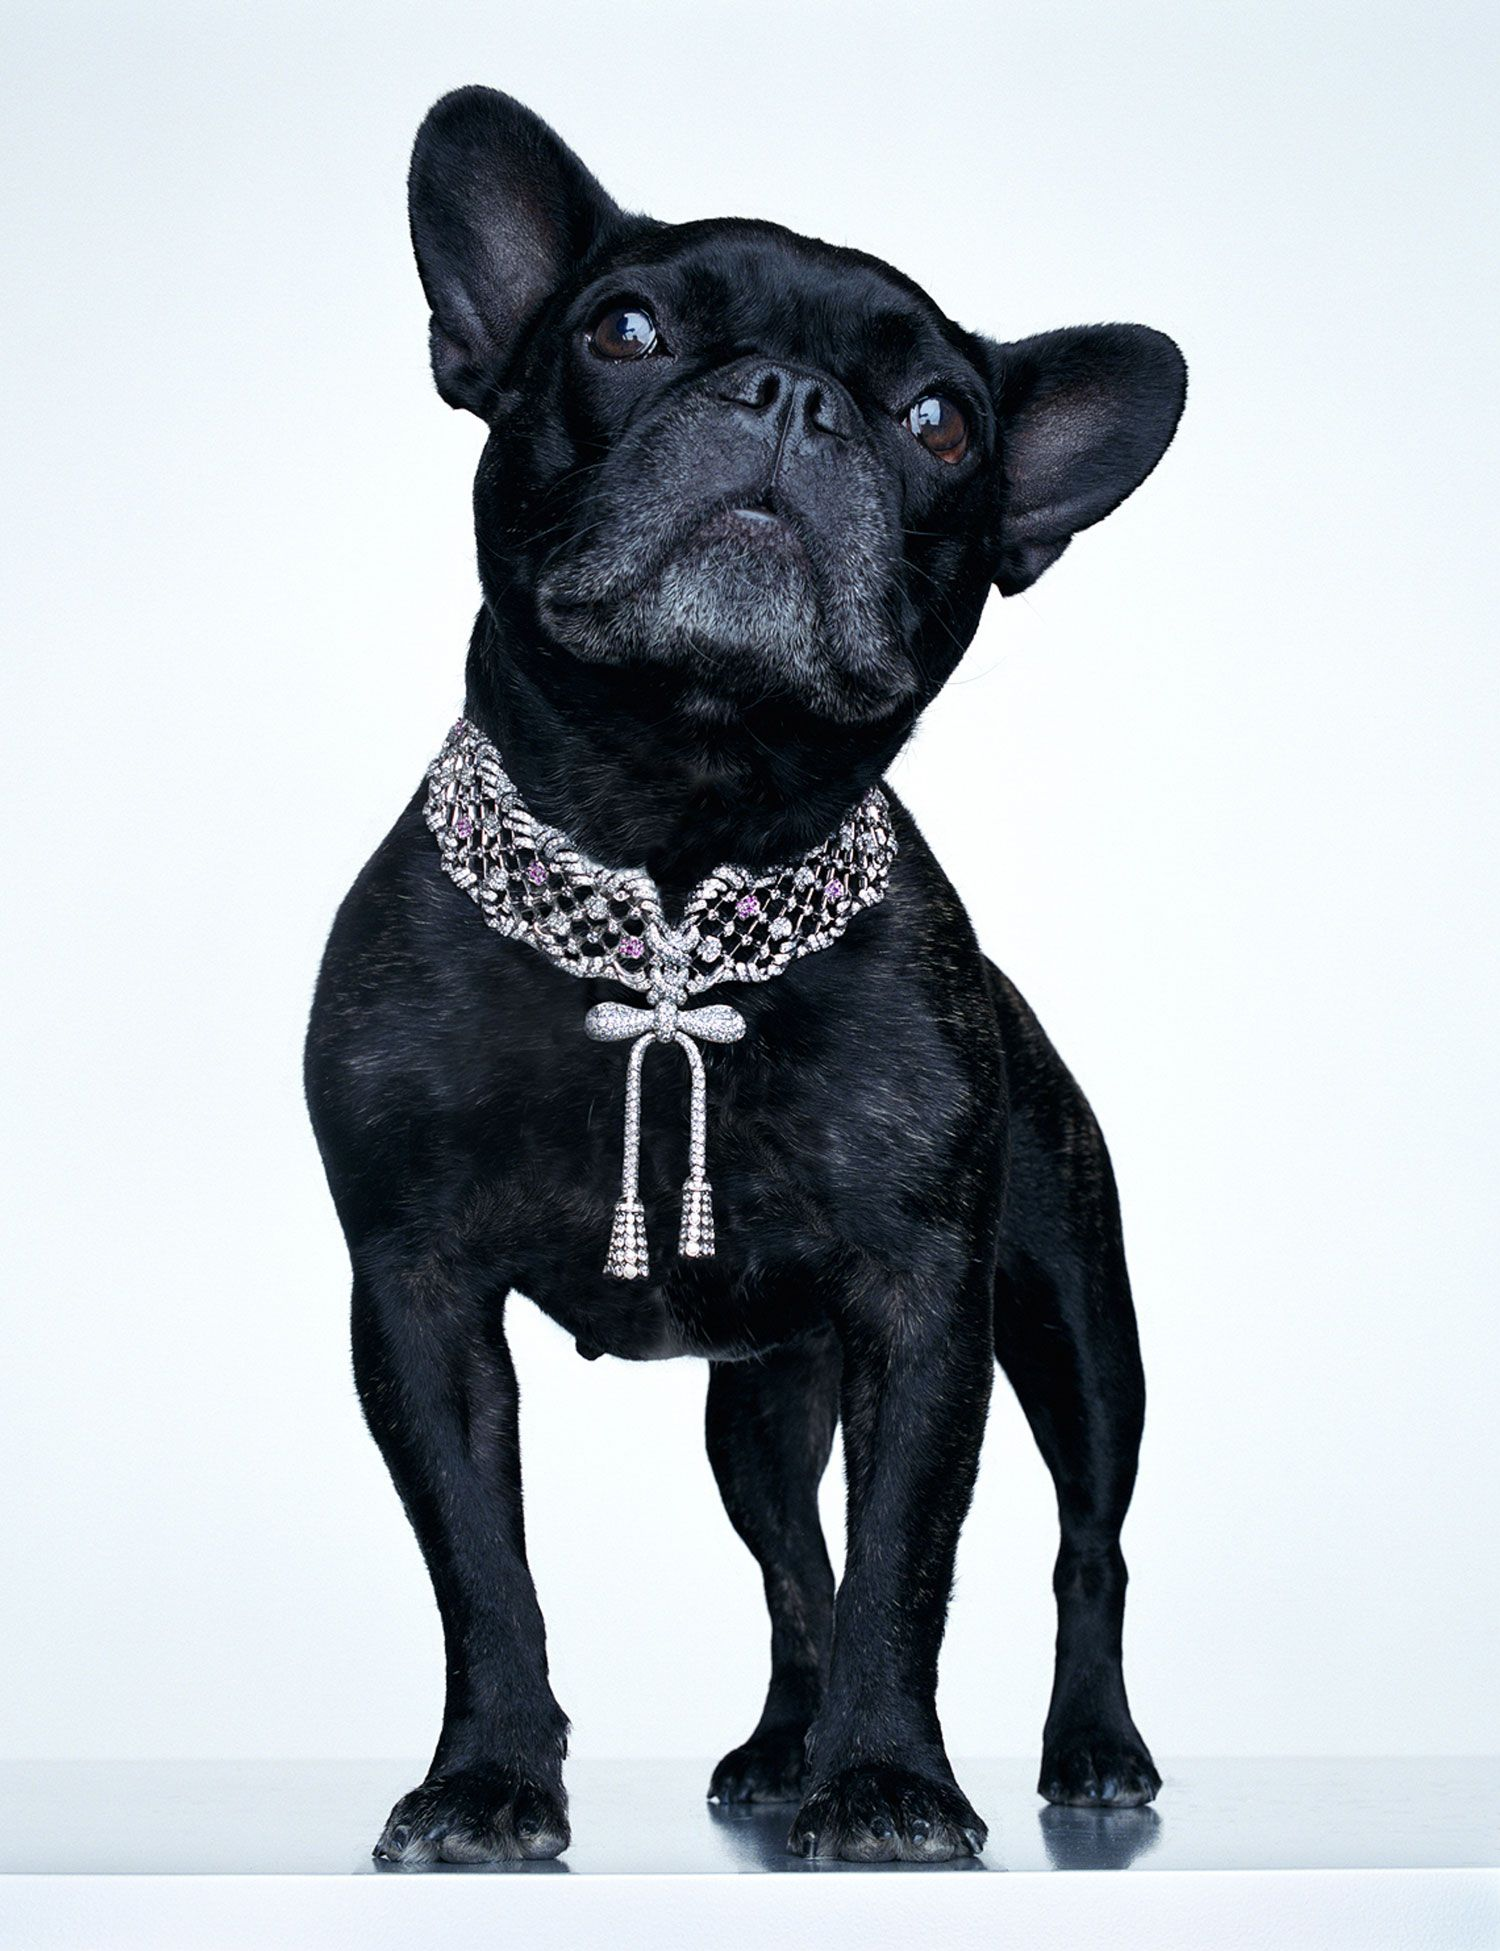 torkil gudnason animal jewelry french bulldog